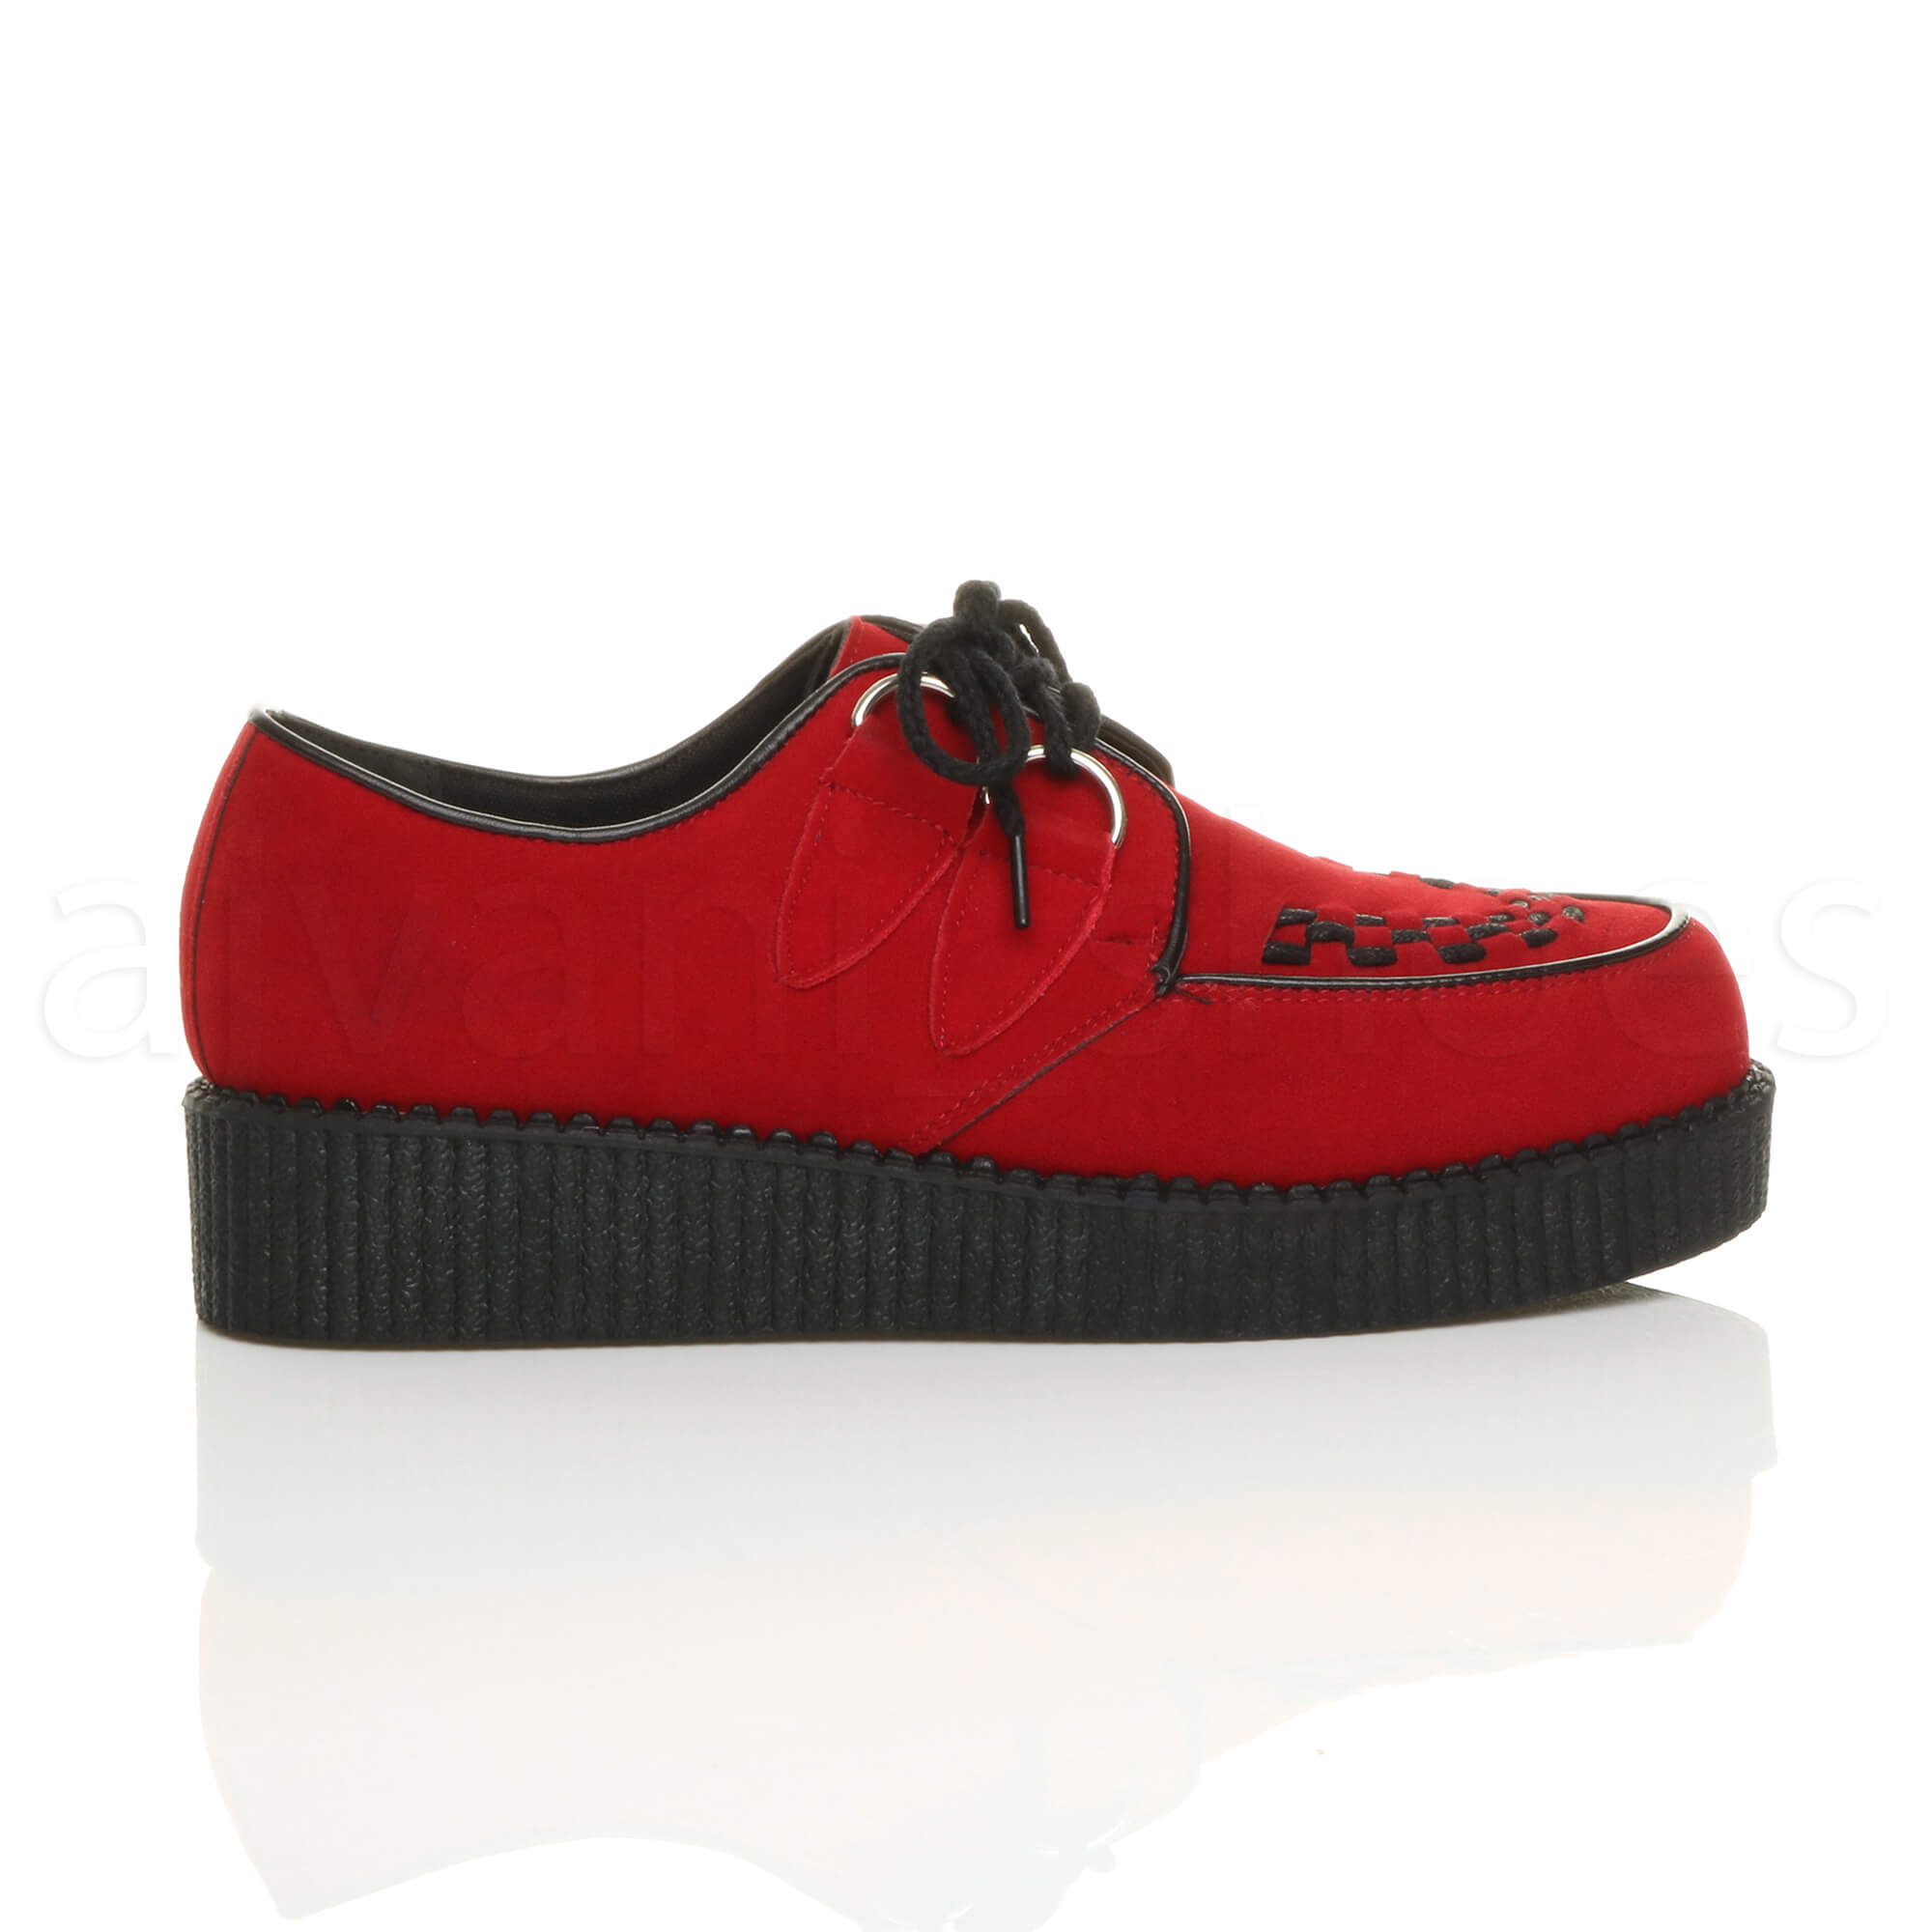 MENS-PLATFORM-WEDGE-LACE-UP-GOTH-PUNK-BROTHEL-CREEPERS-BEETLE-CRUSHERS-SHOES thumbnail 45